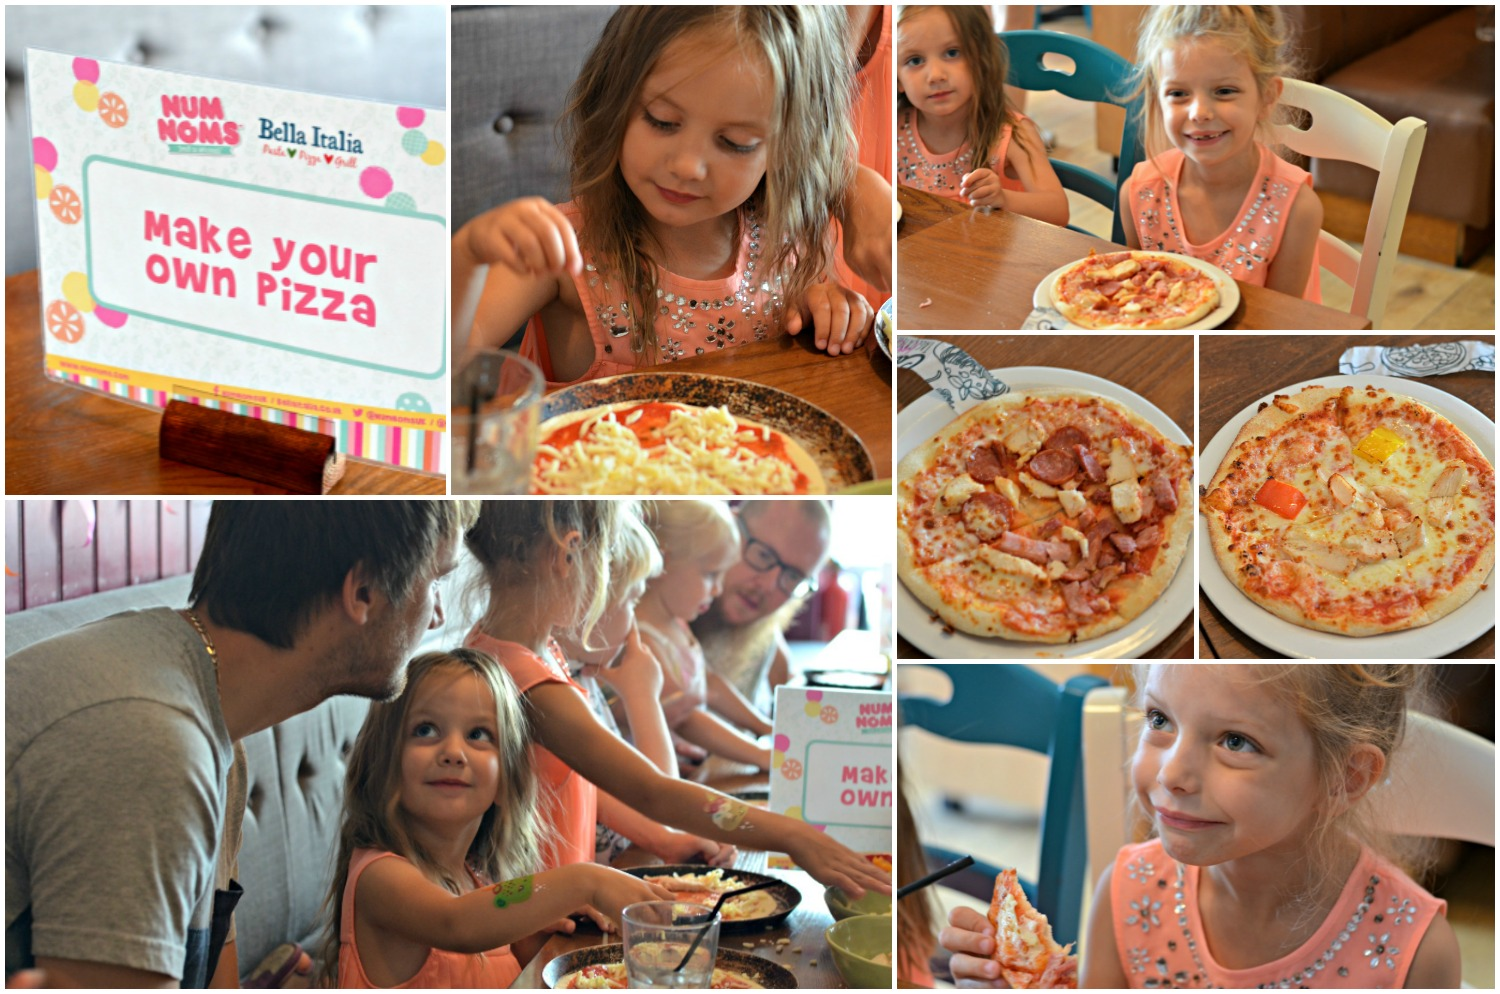 MAKE YOUR OWN PIZZA NUM NOMS BELLA ITALIA